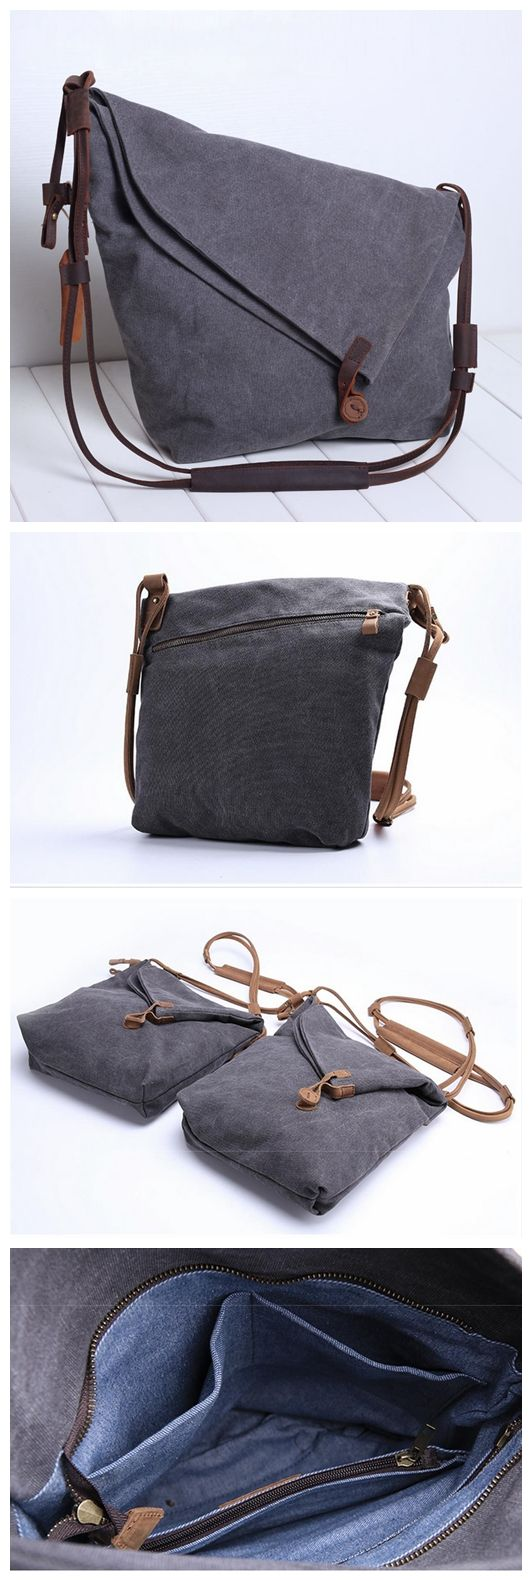 LEATHER CANVAS BAGS, SHOPPING TOTES, CROSSBODY CANVAS BAGS, CANVAS SHOULDER BAG JC001